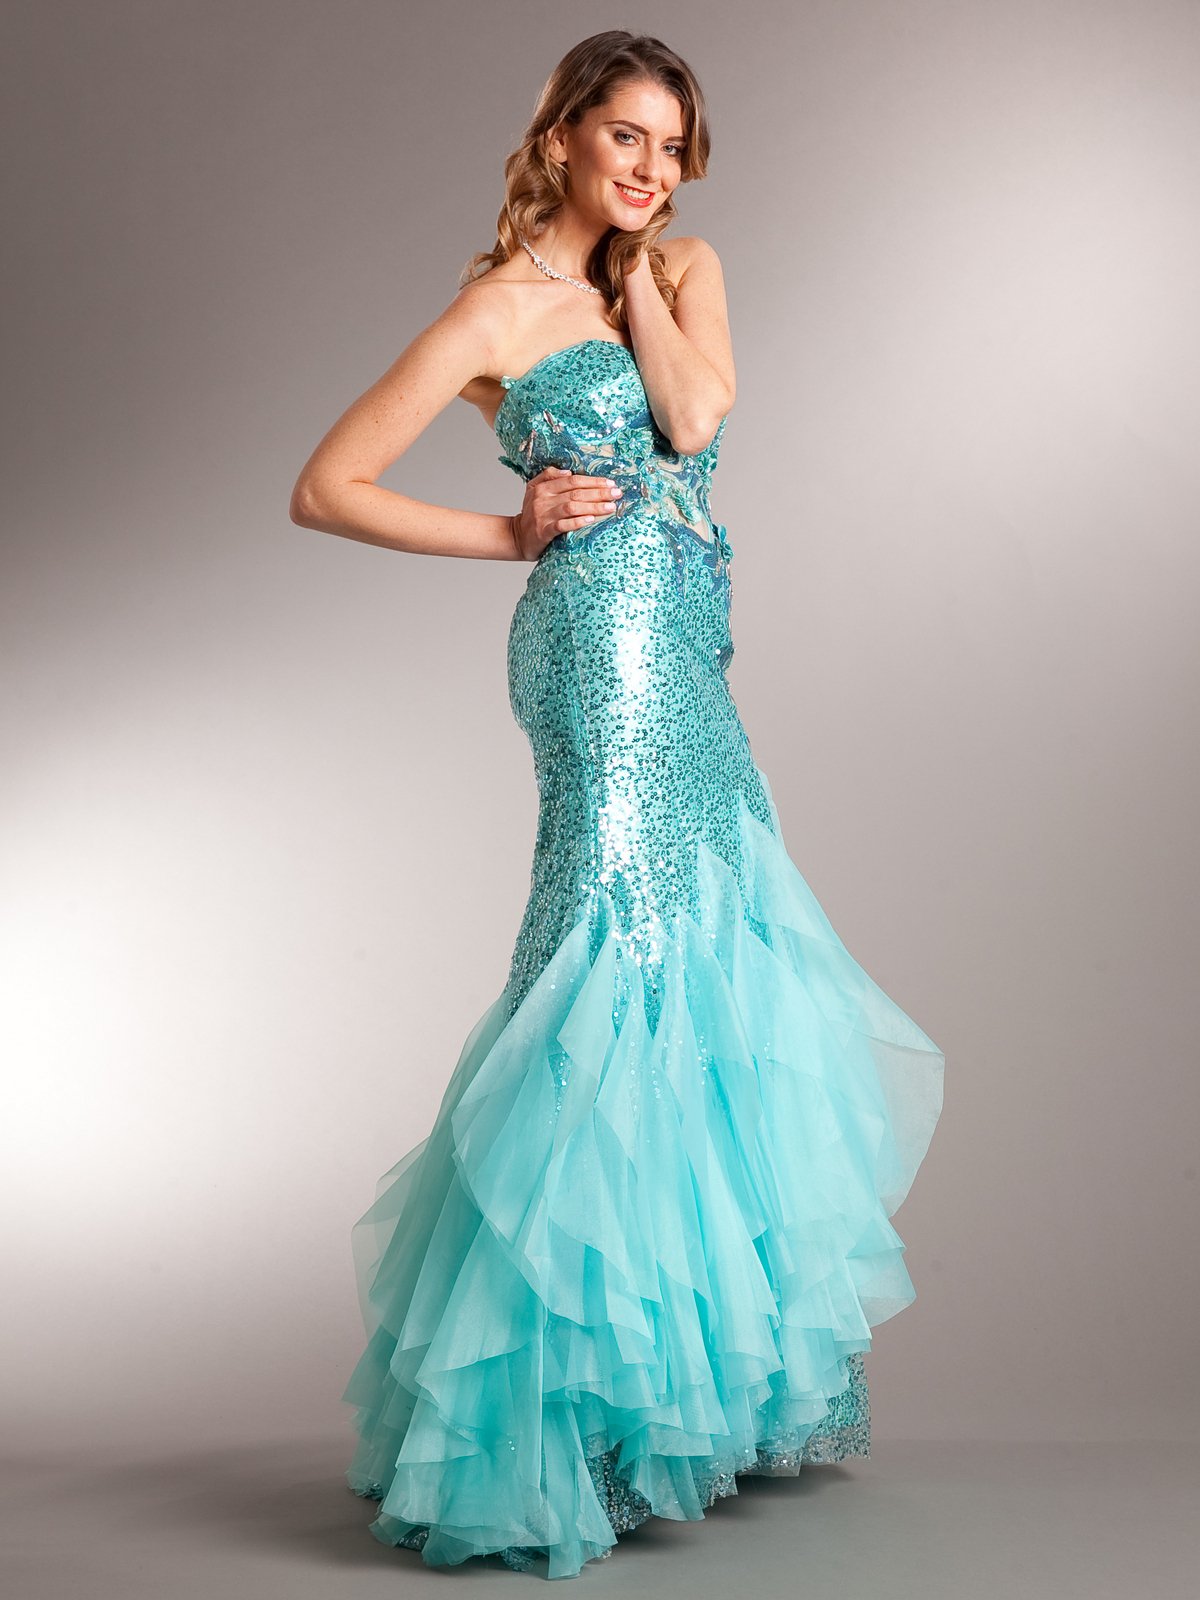 Aqua Sequin Prom Dress | Sung Boutique L.A.